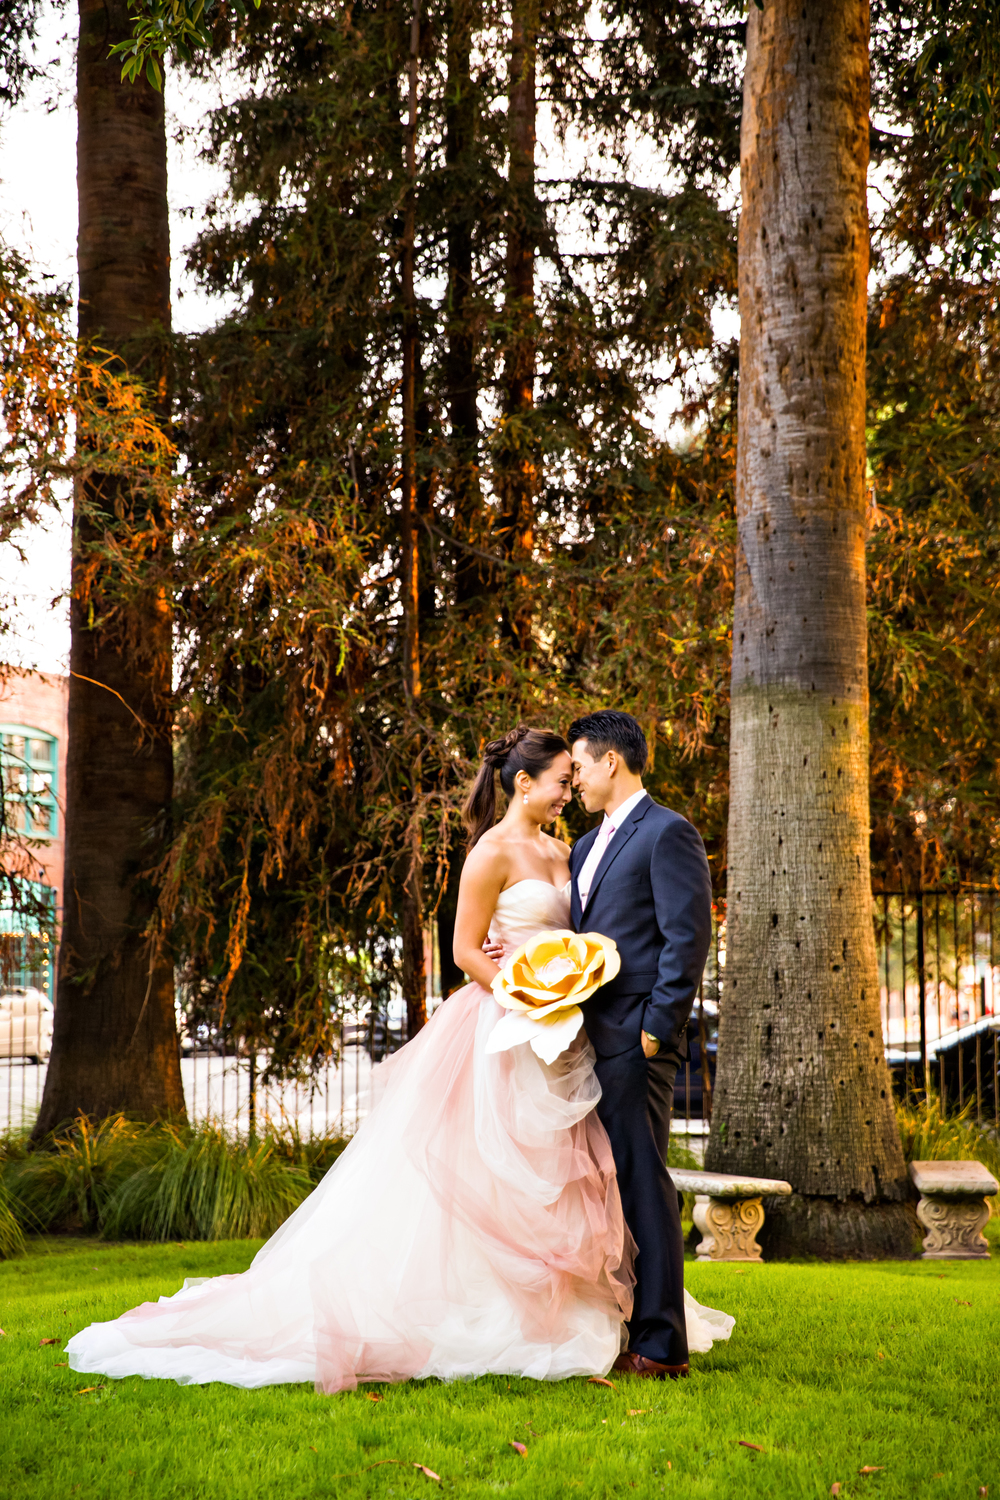 Pasadena Wedding at Castle Green // Bride + Groom